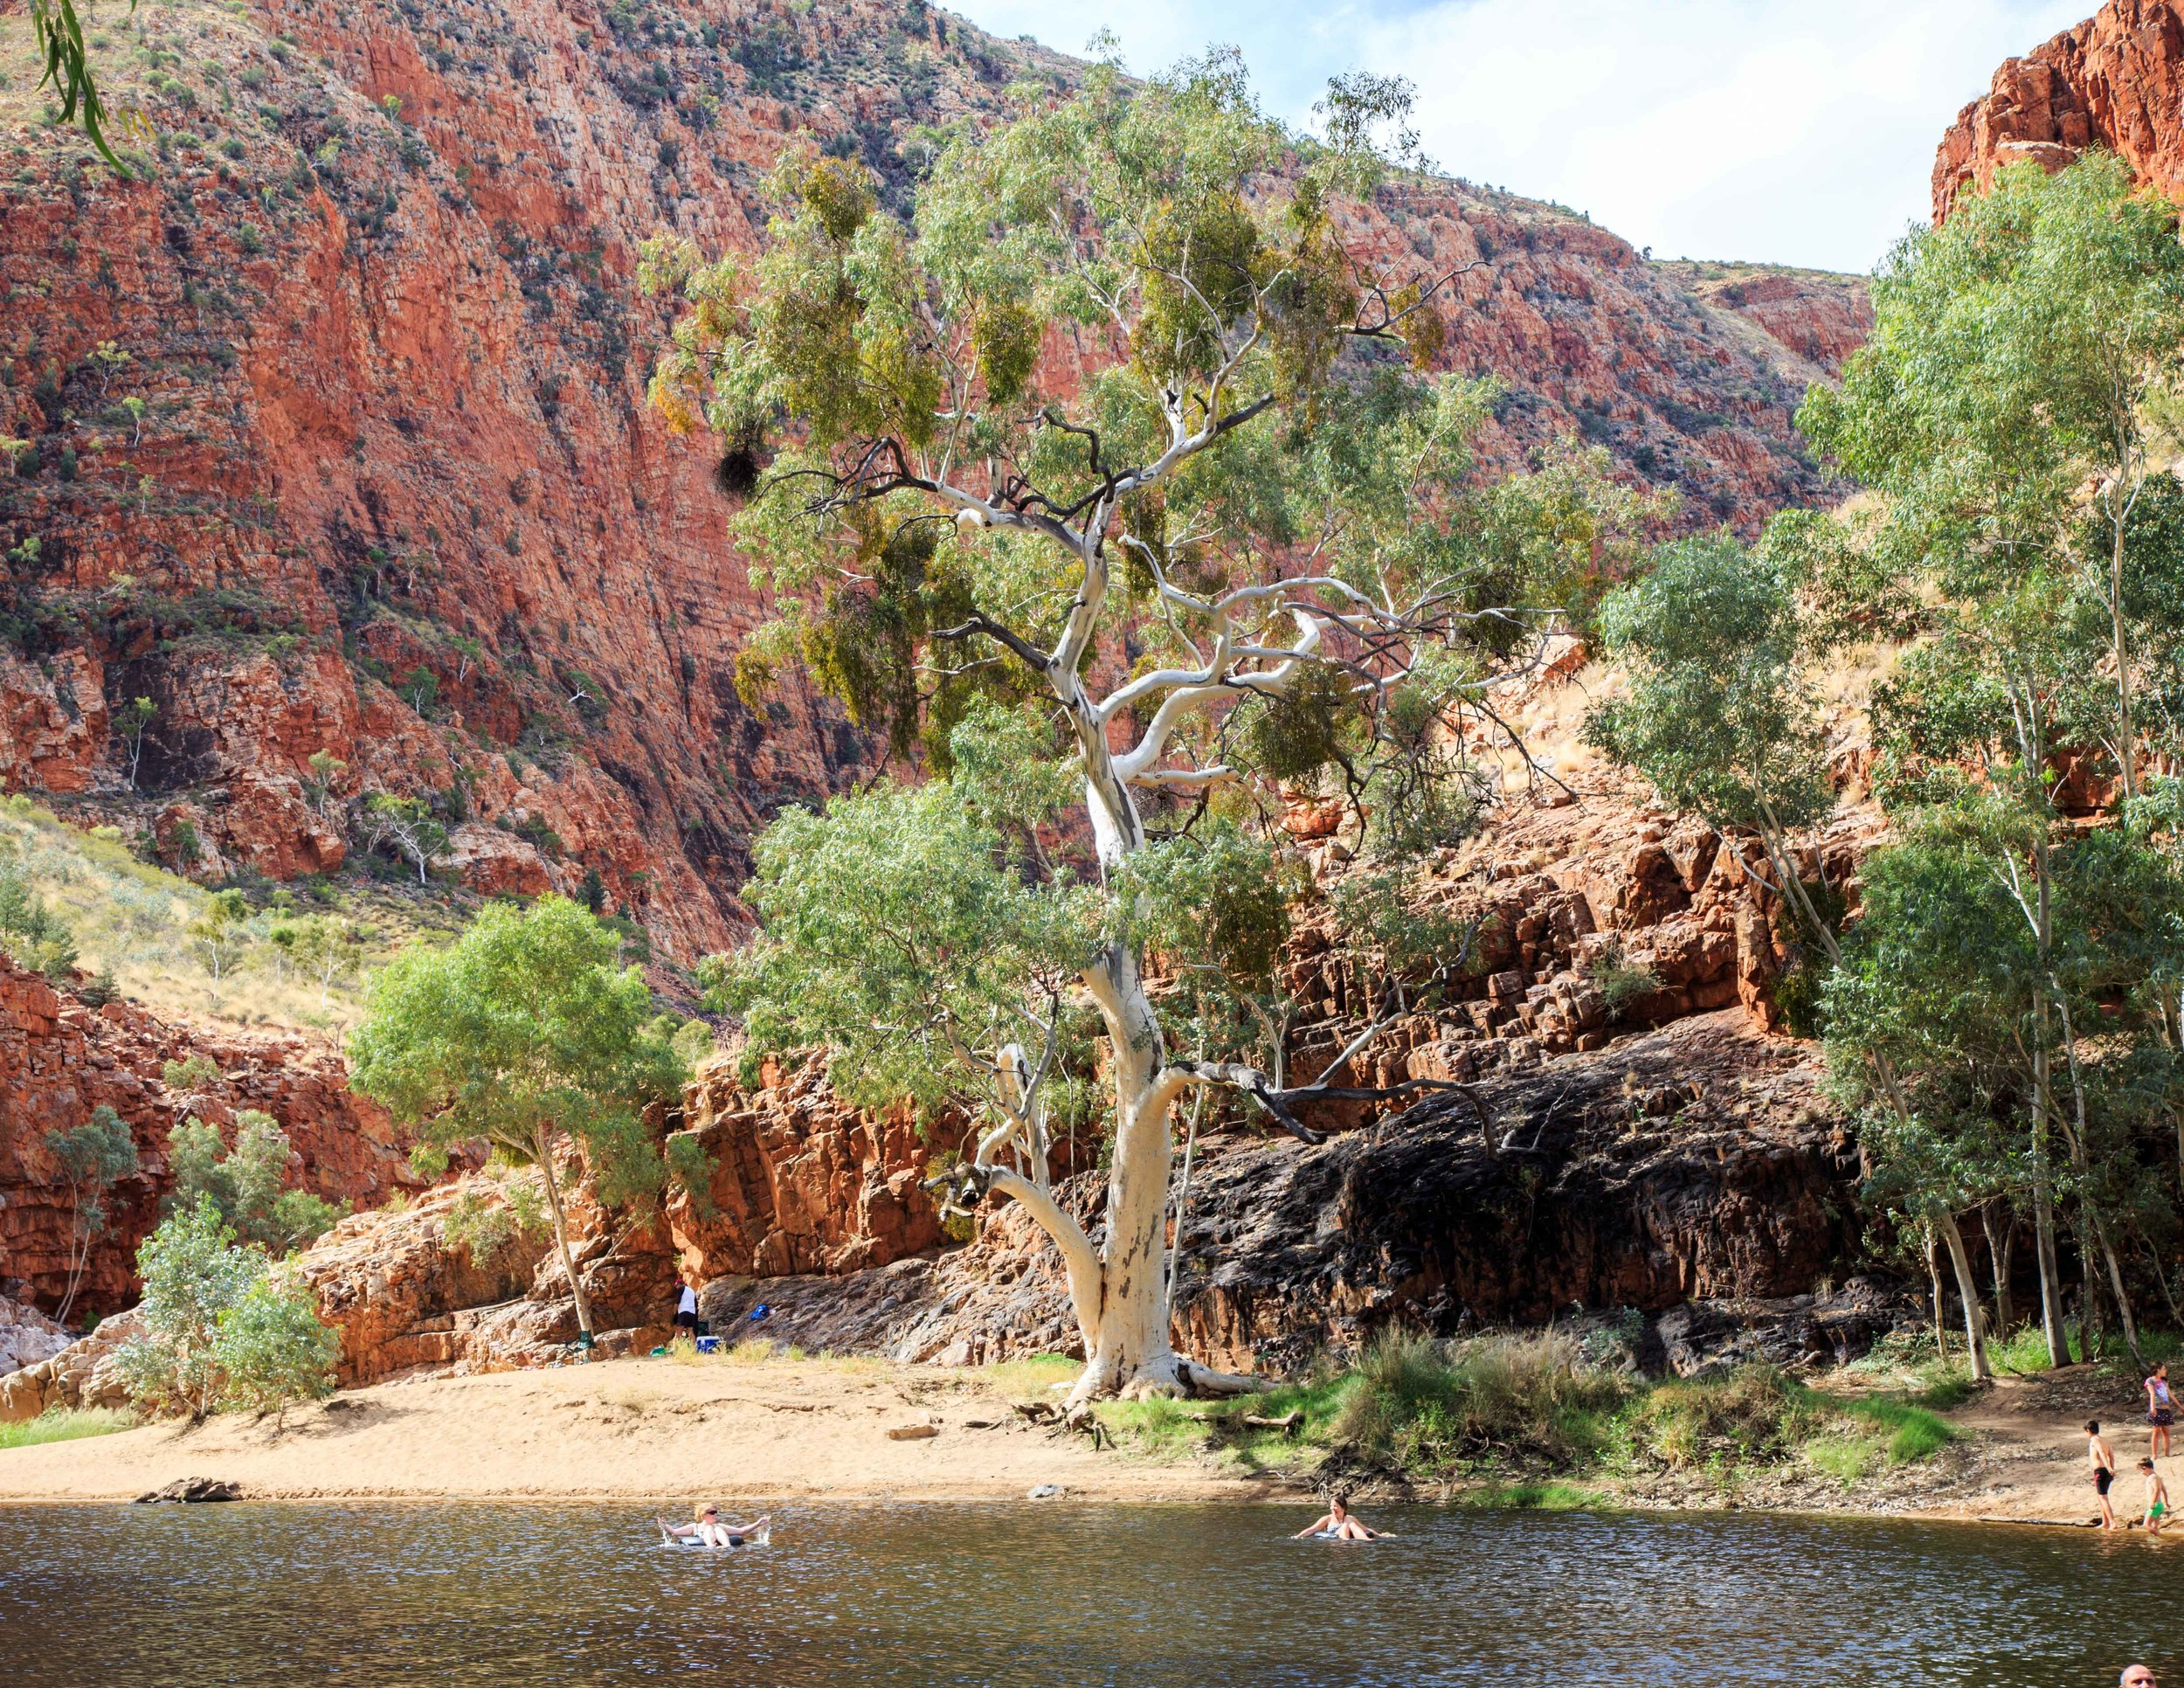 Instagrammable spots in the outback: Ormiston Gorge